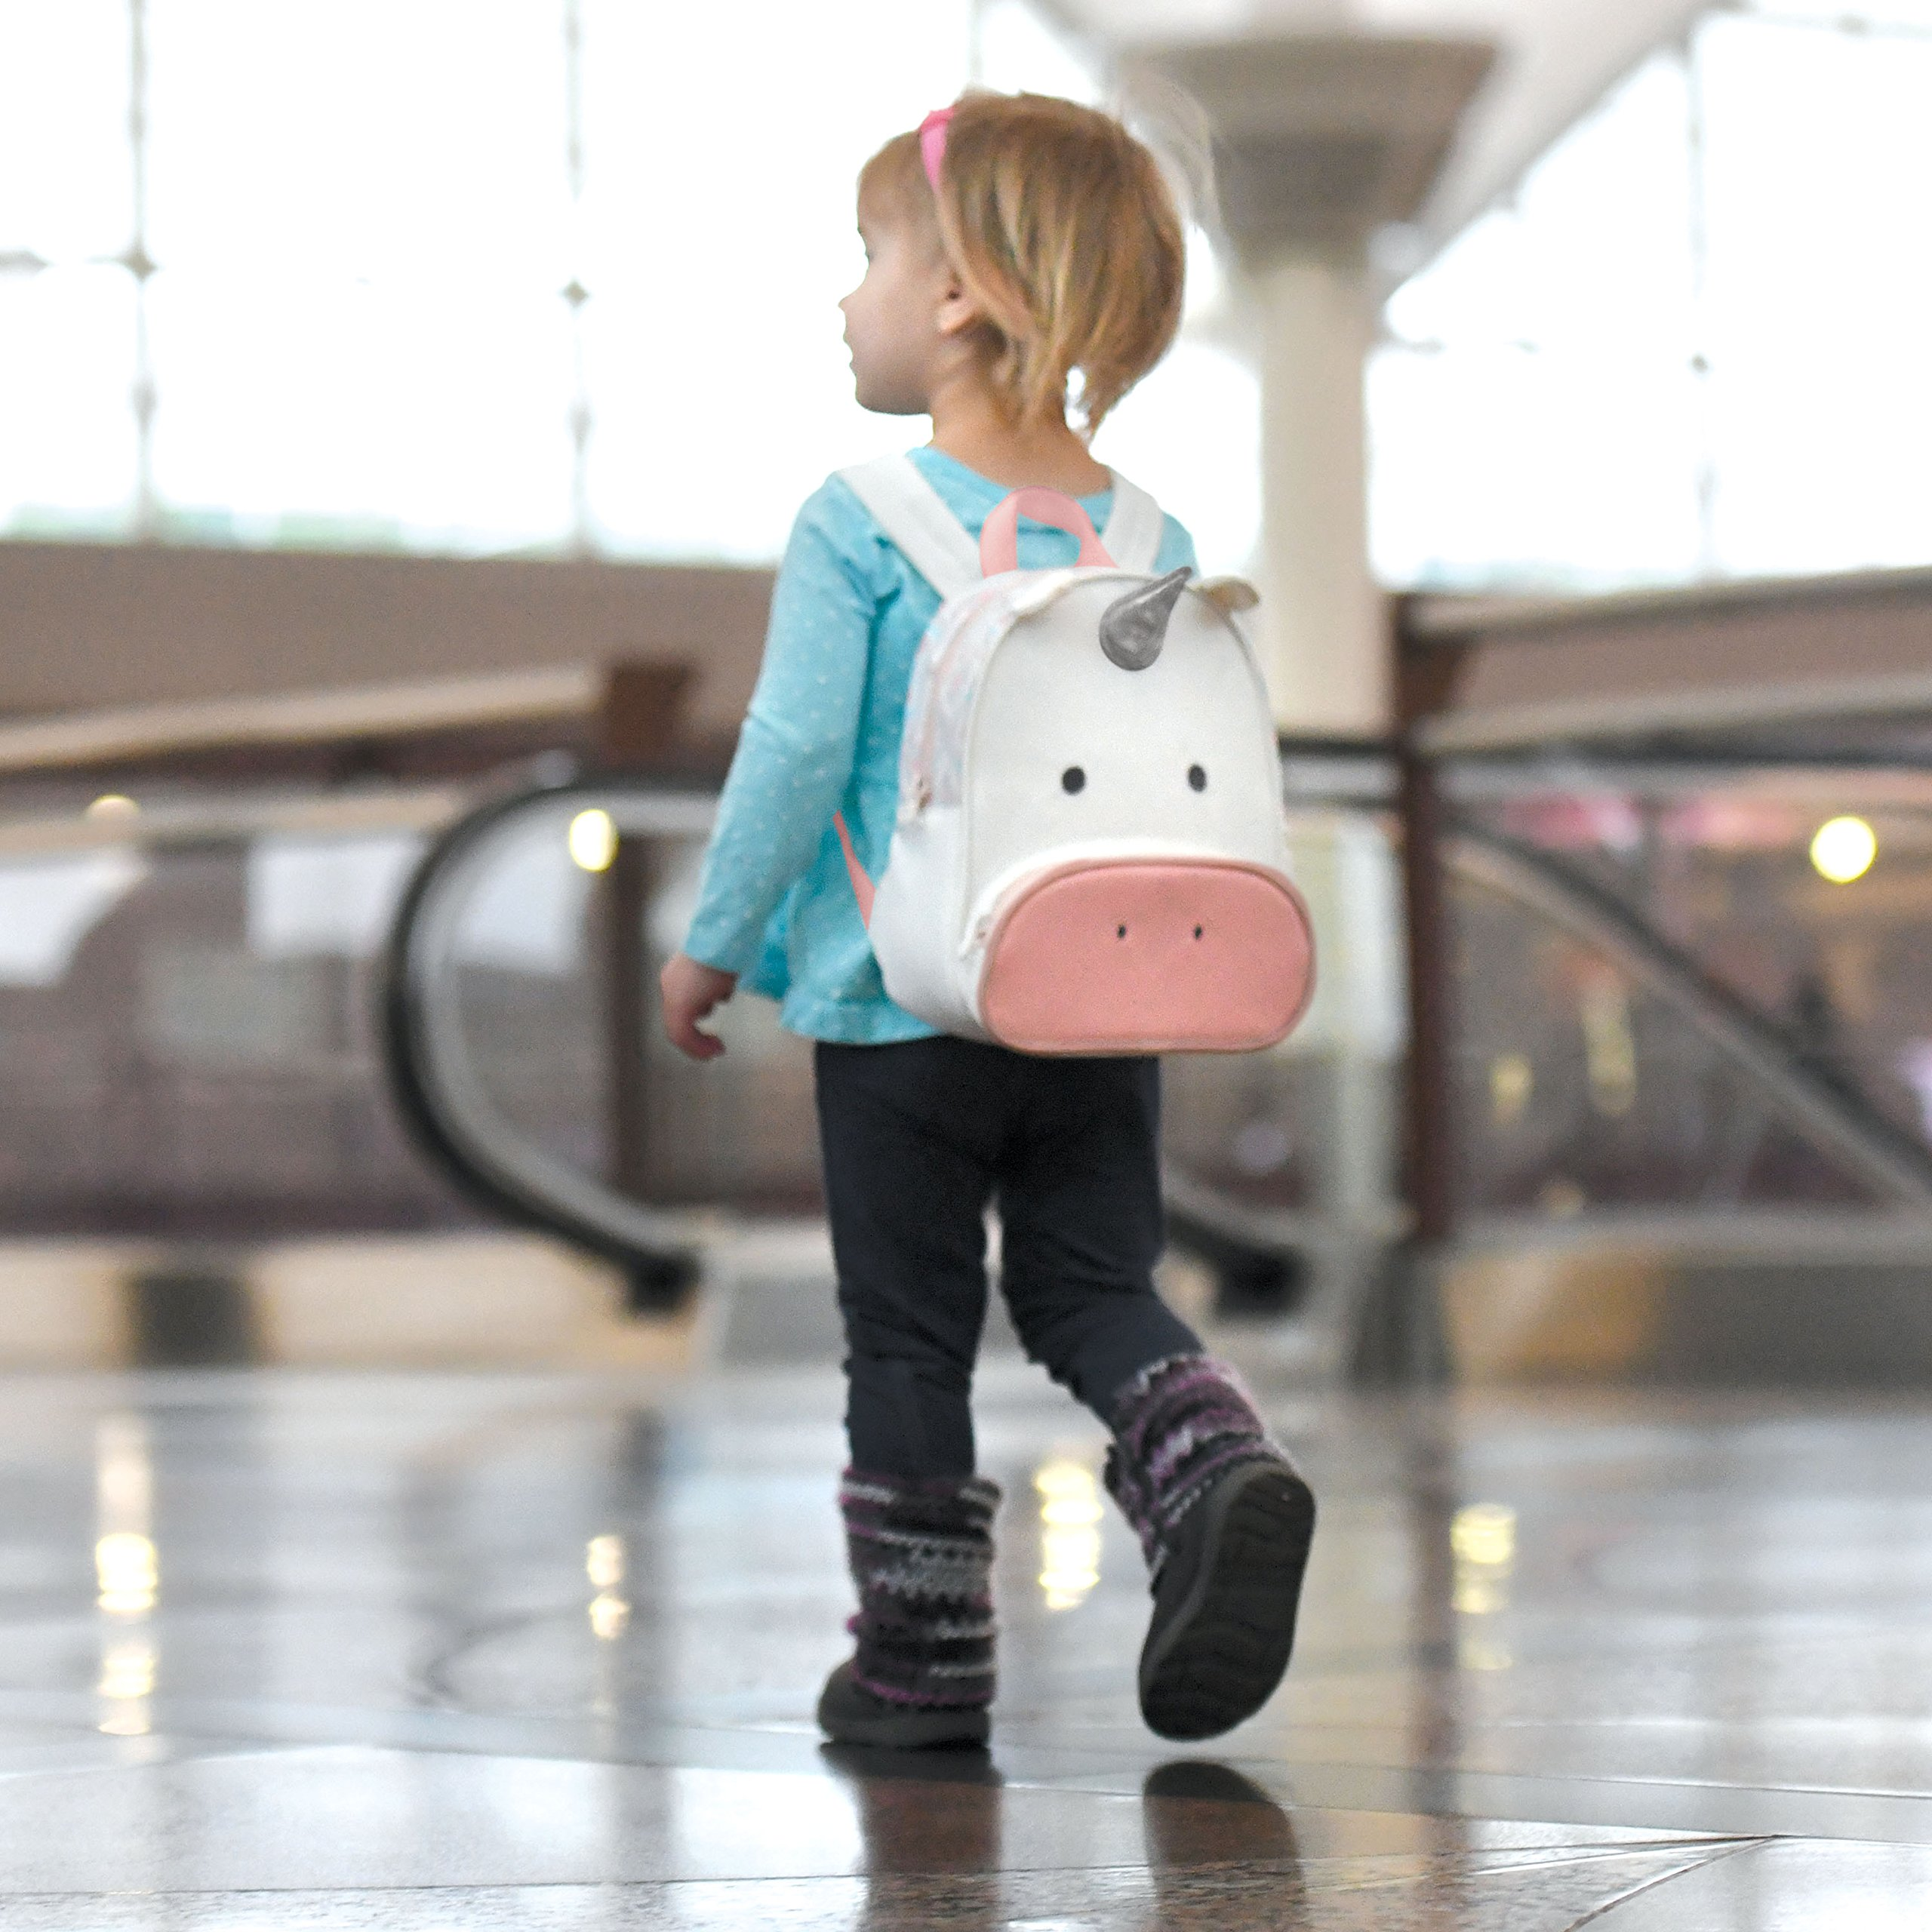 Travel Bug Toddler Safety Unicorn Backpack Harness with Removable Tether, Pink/White by Travel Bug (Image #2)